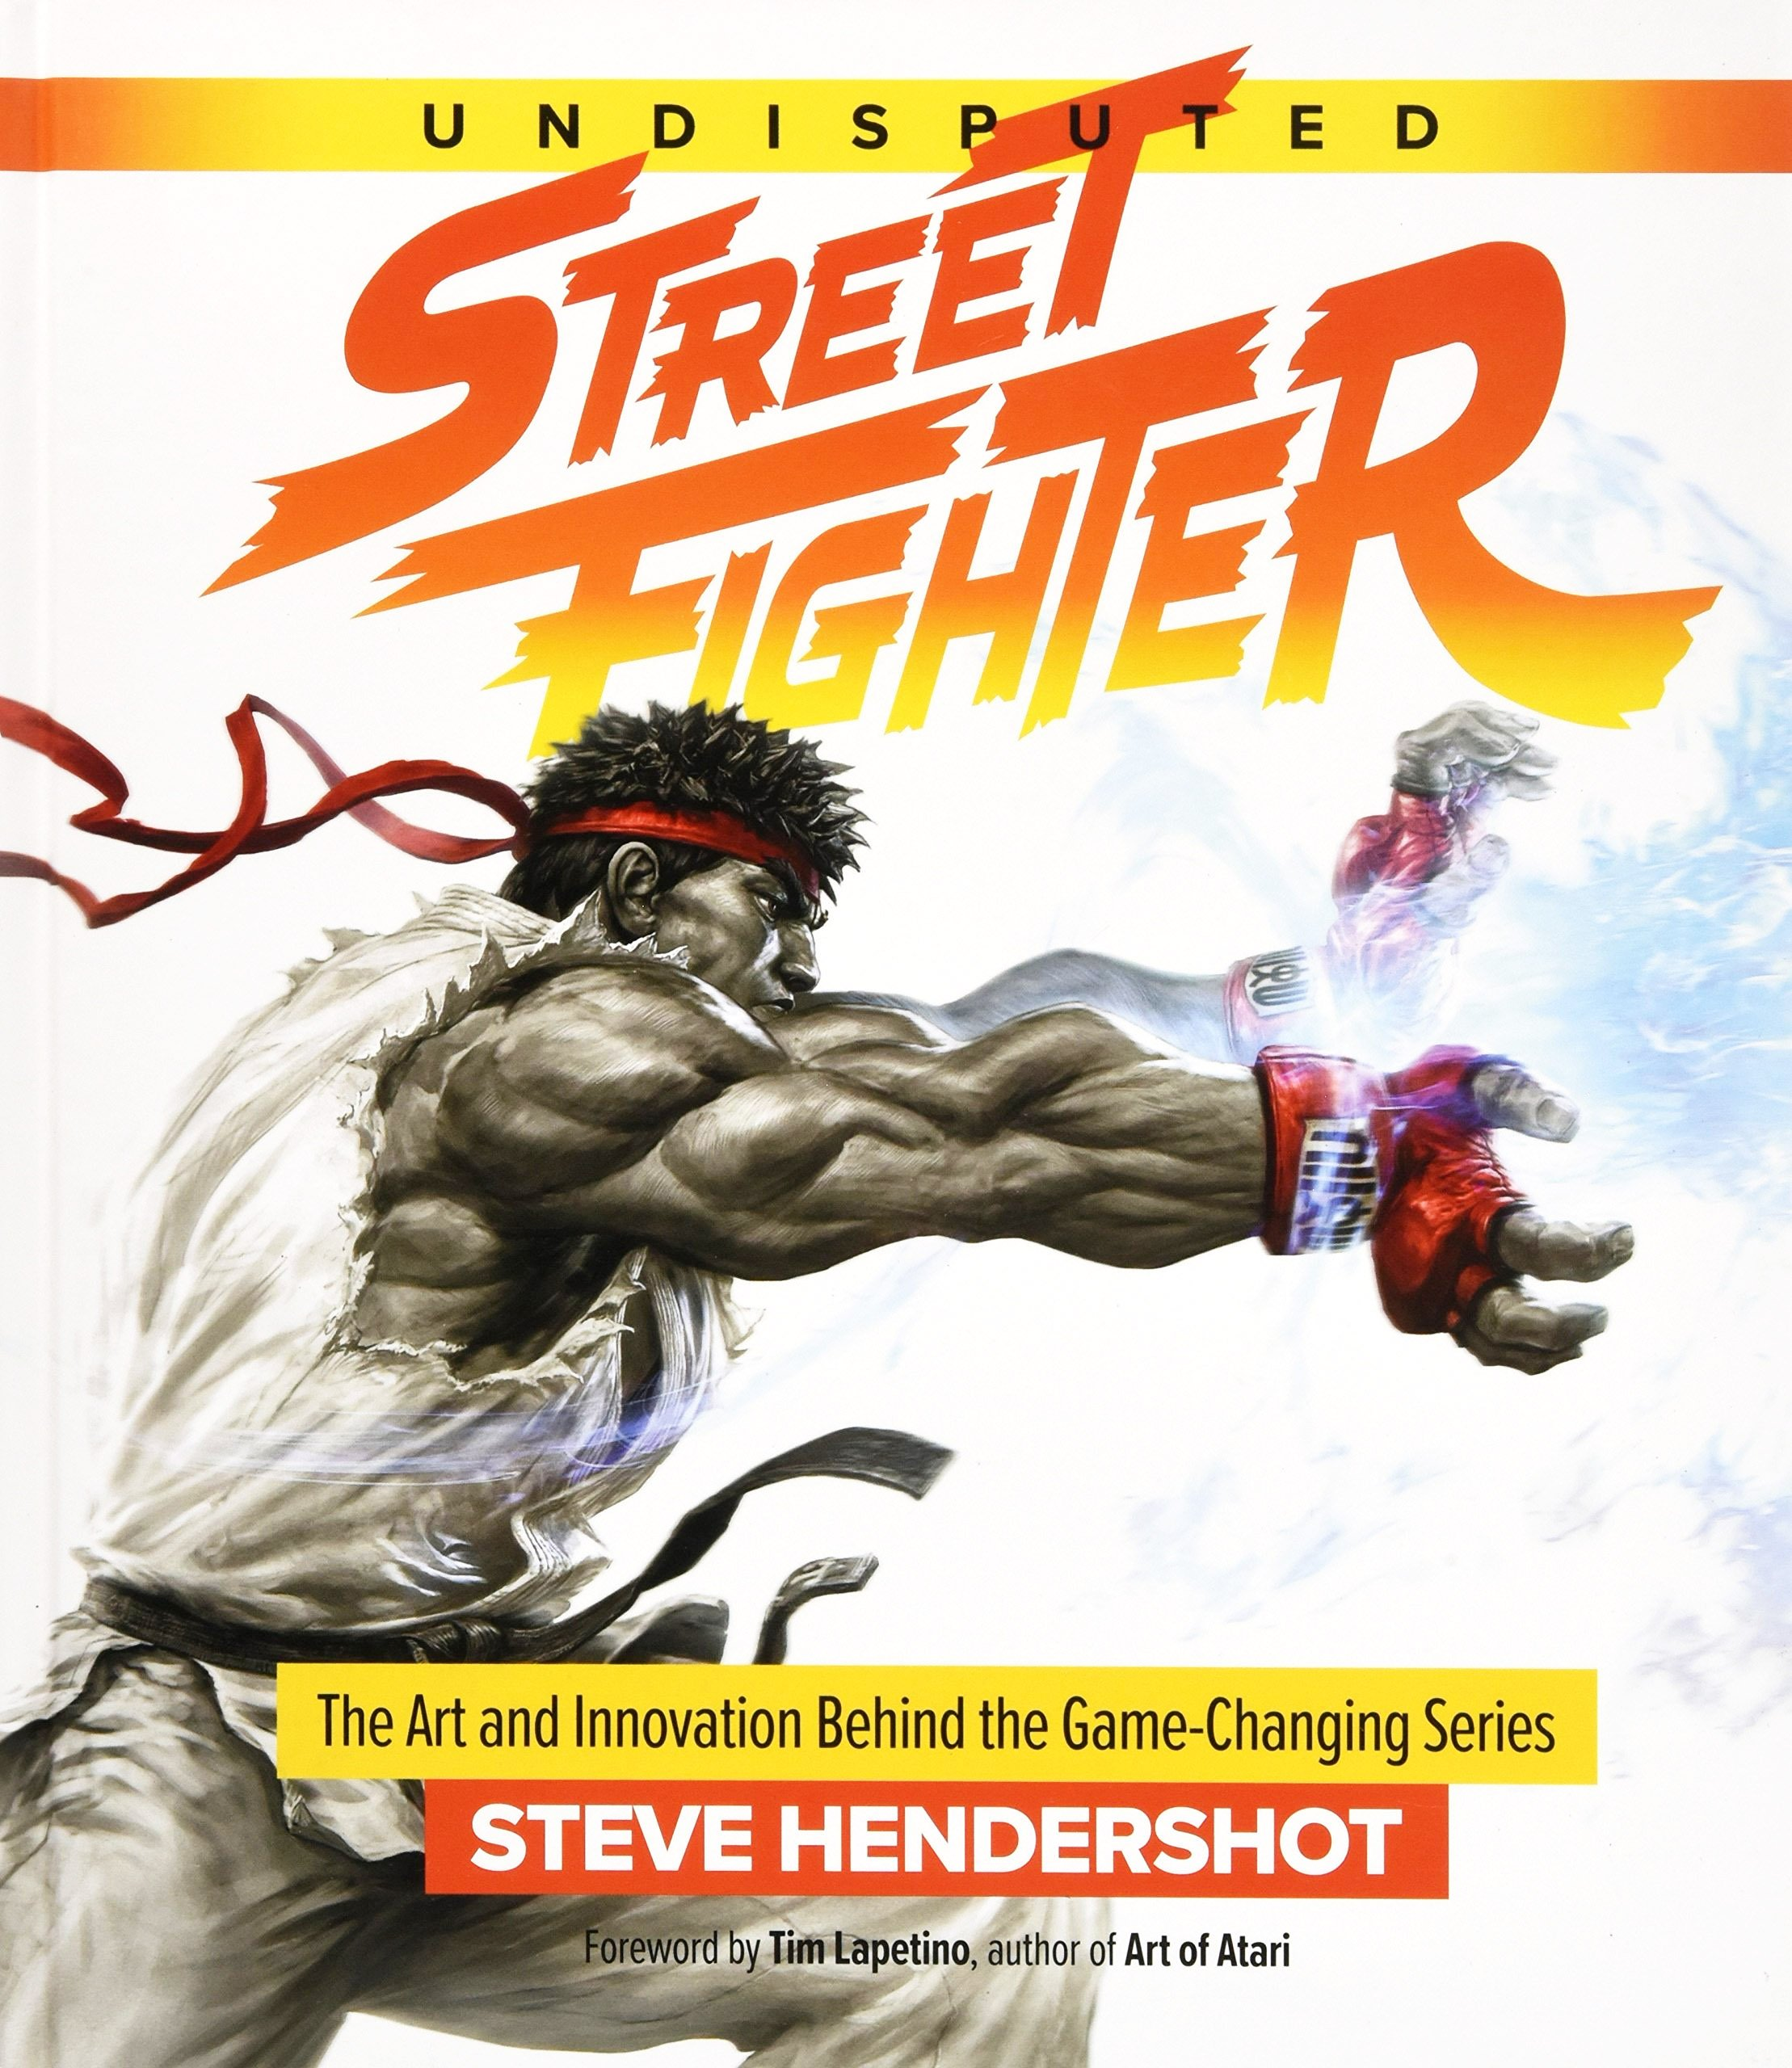 Street Fighter - Undisputed Street Fighter: A 30th Anniversary Retrospective